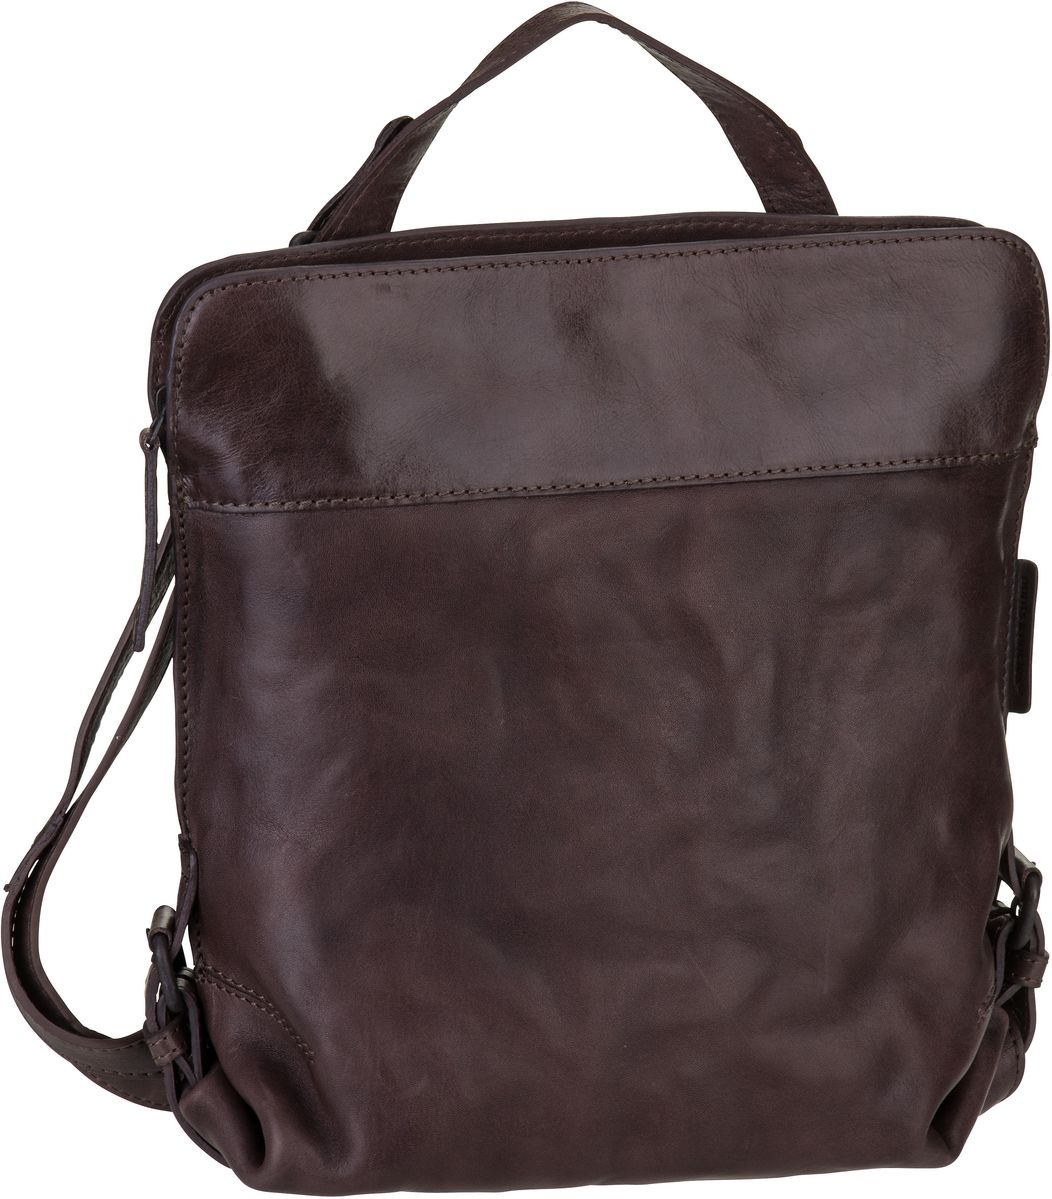 Rucksack / Daypack Mrs. Crumble Cookie Plum Truffle